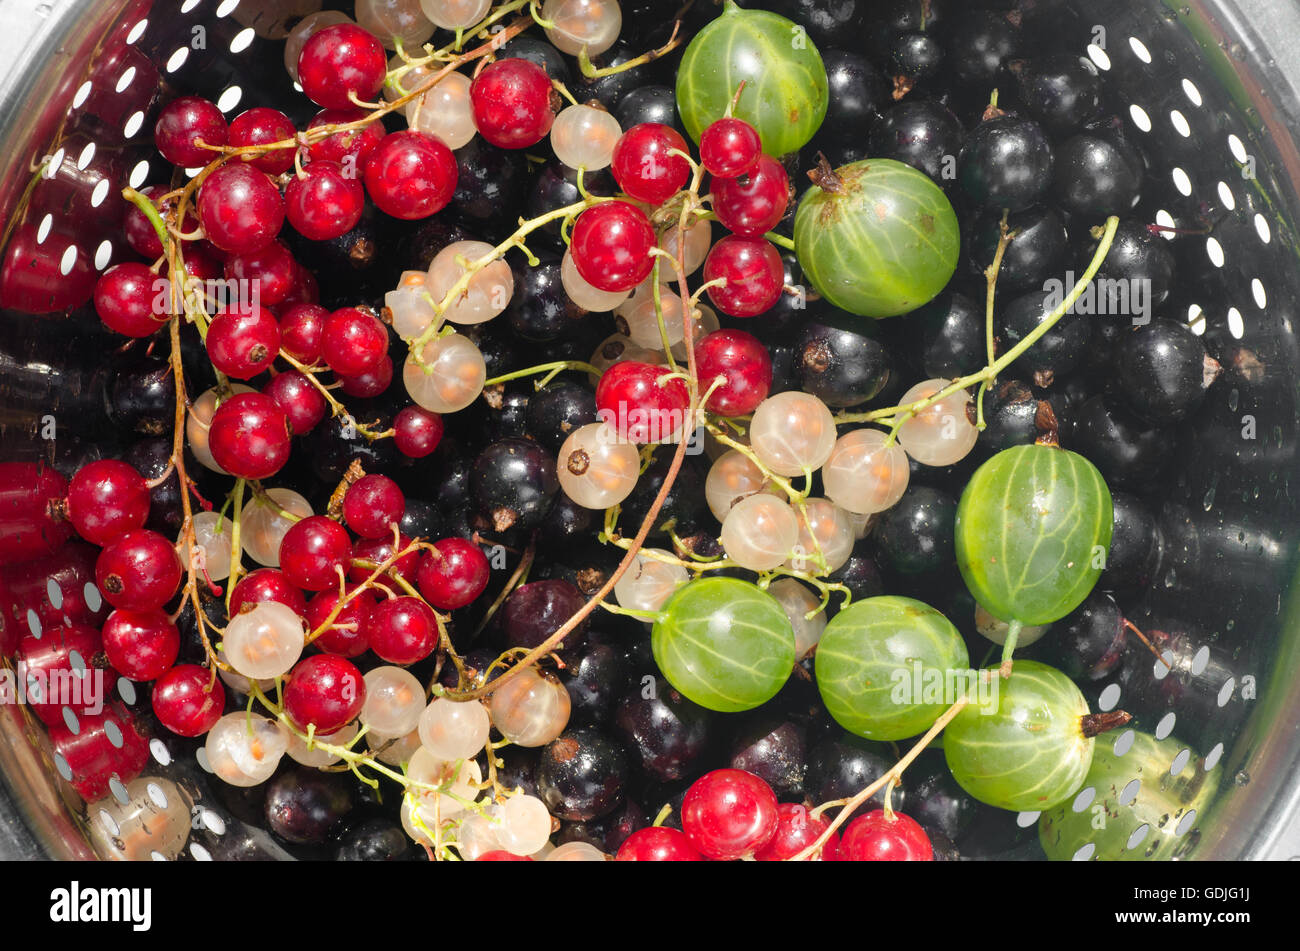 mixed currant berries in colander - Stock Image